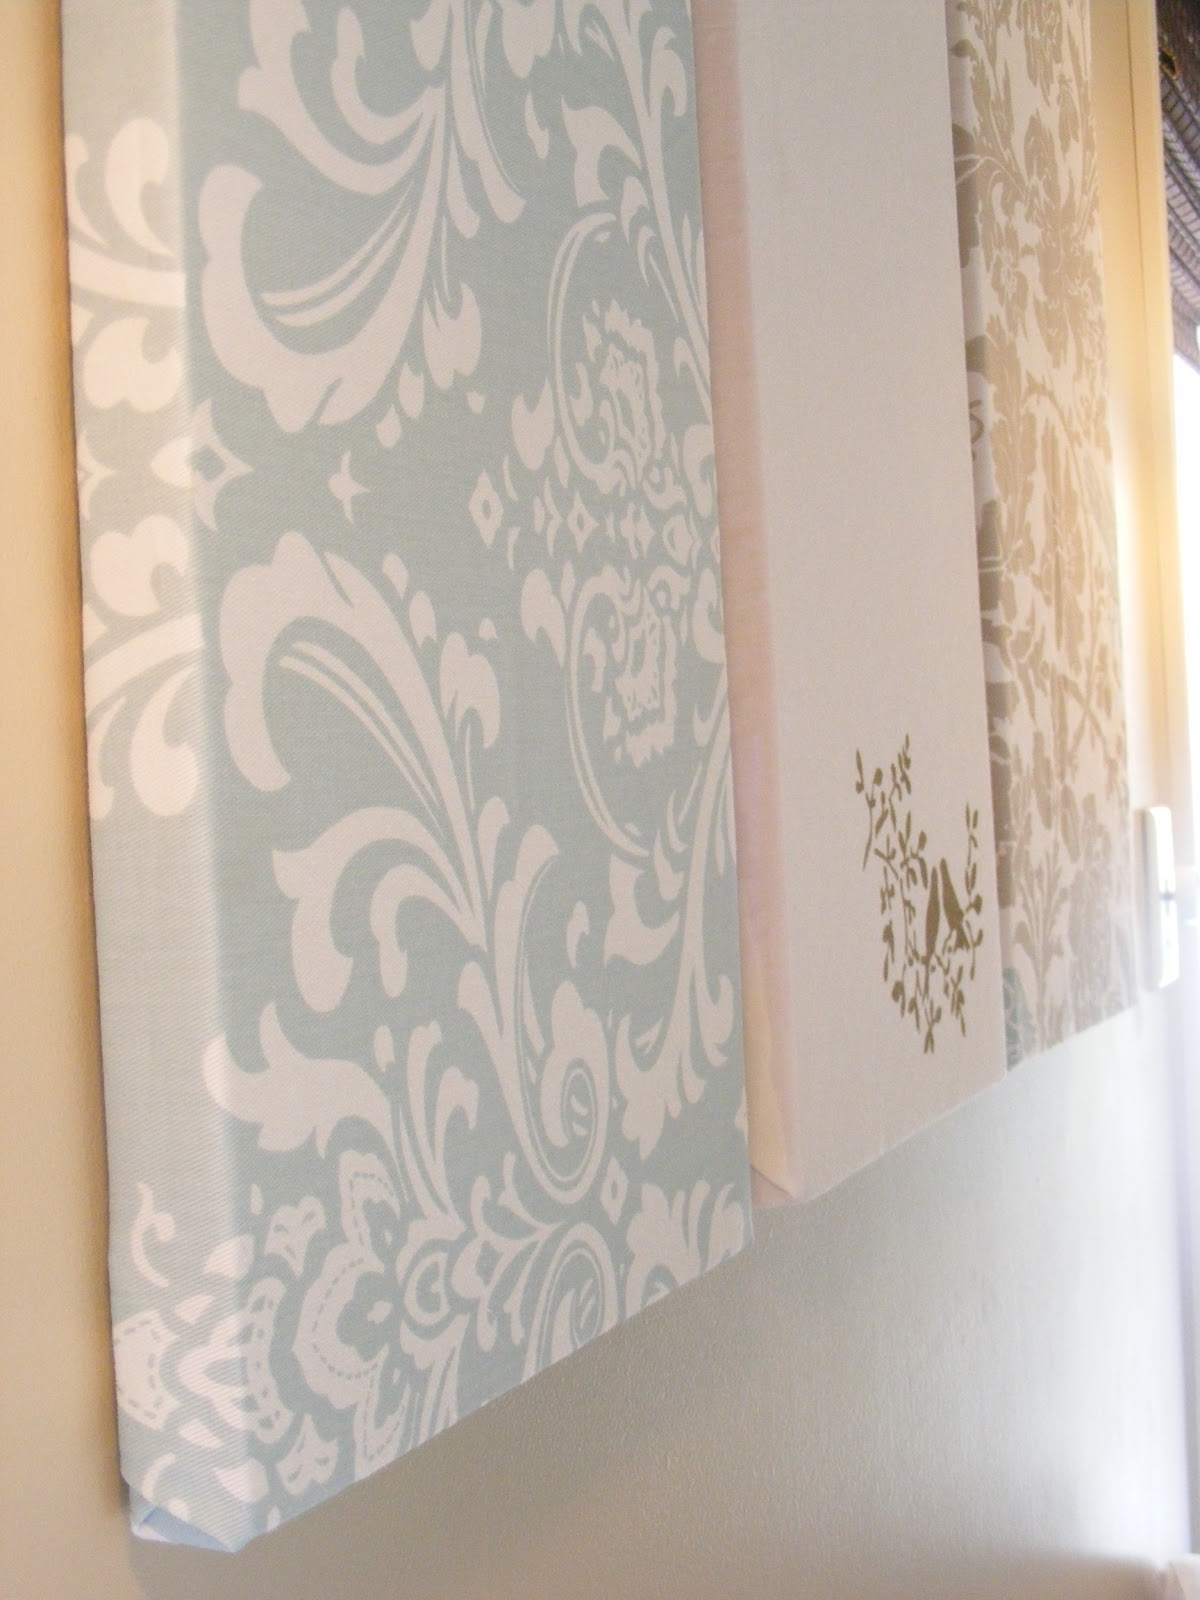 The Complete Guide To Imperfect Homemaking: Simple, Thrifty Diy Art Throughout Most Recently Released Fabric Wrapped Wall Art (View 13 of 15)